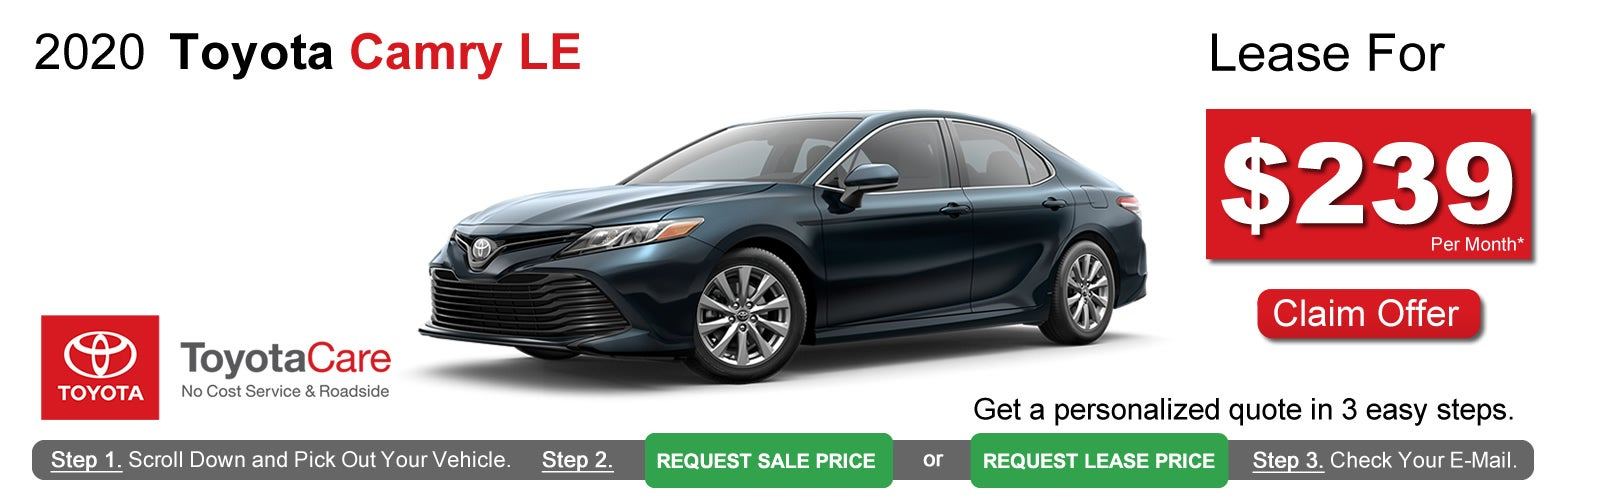 Toyota Camry Lease >> Toyota Camry Lease Deals Near Boston Ma Lease Offers